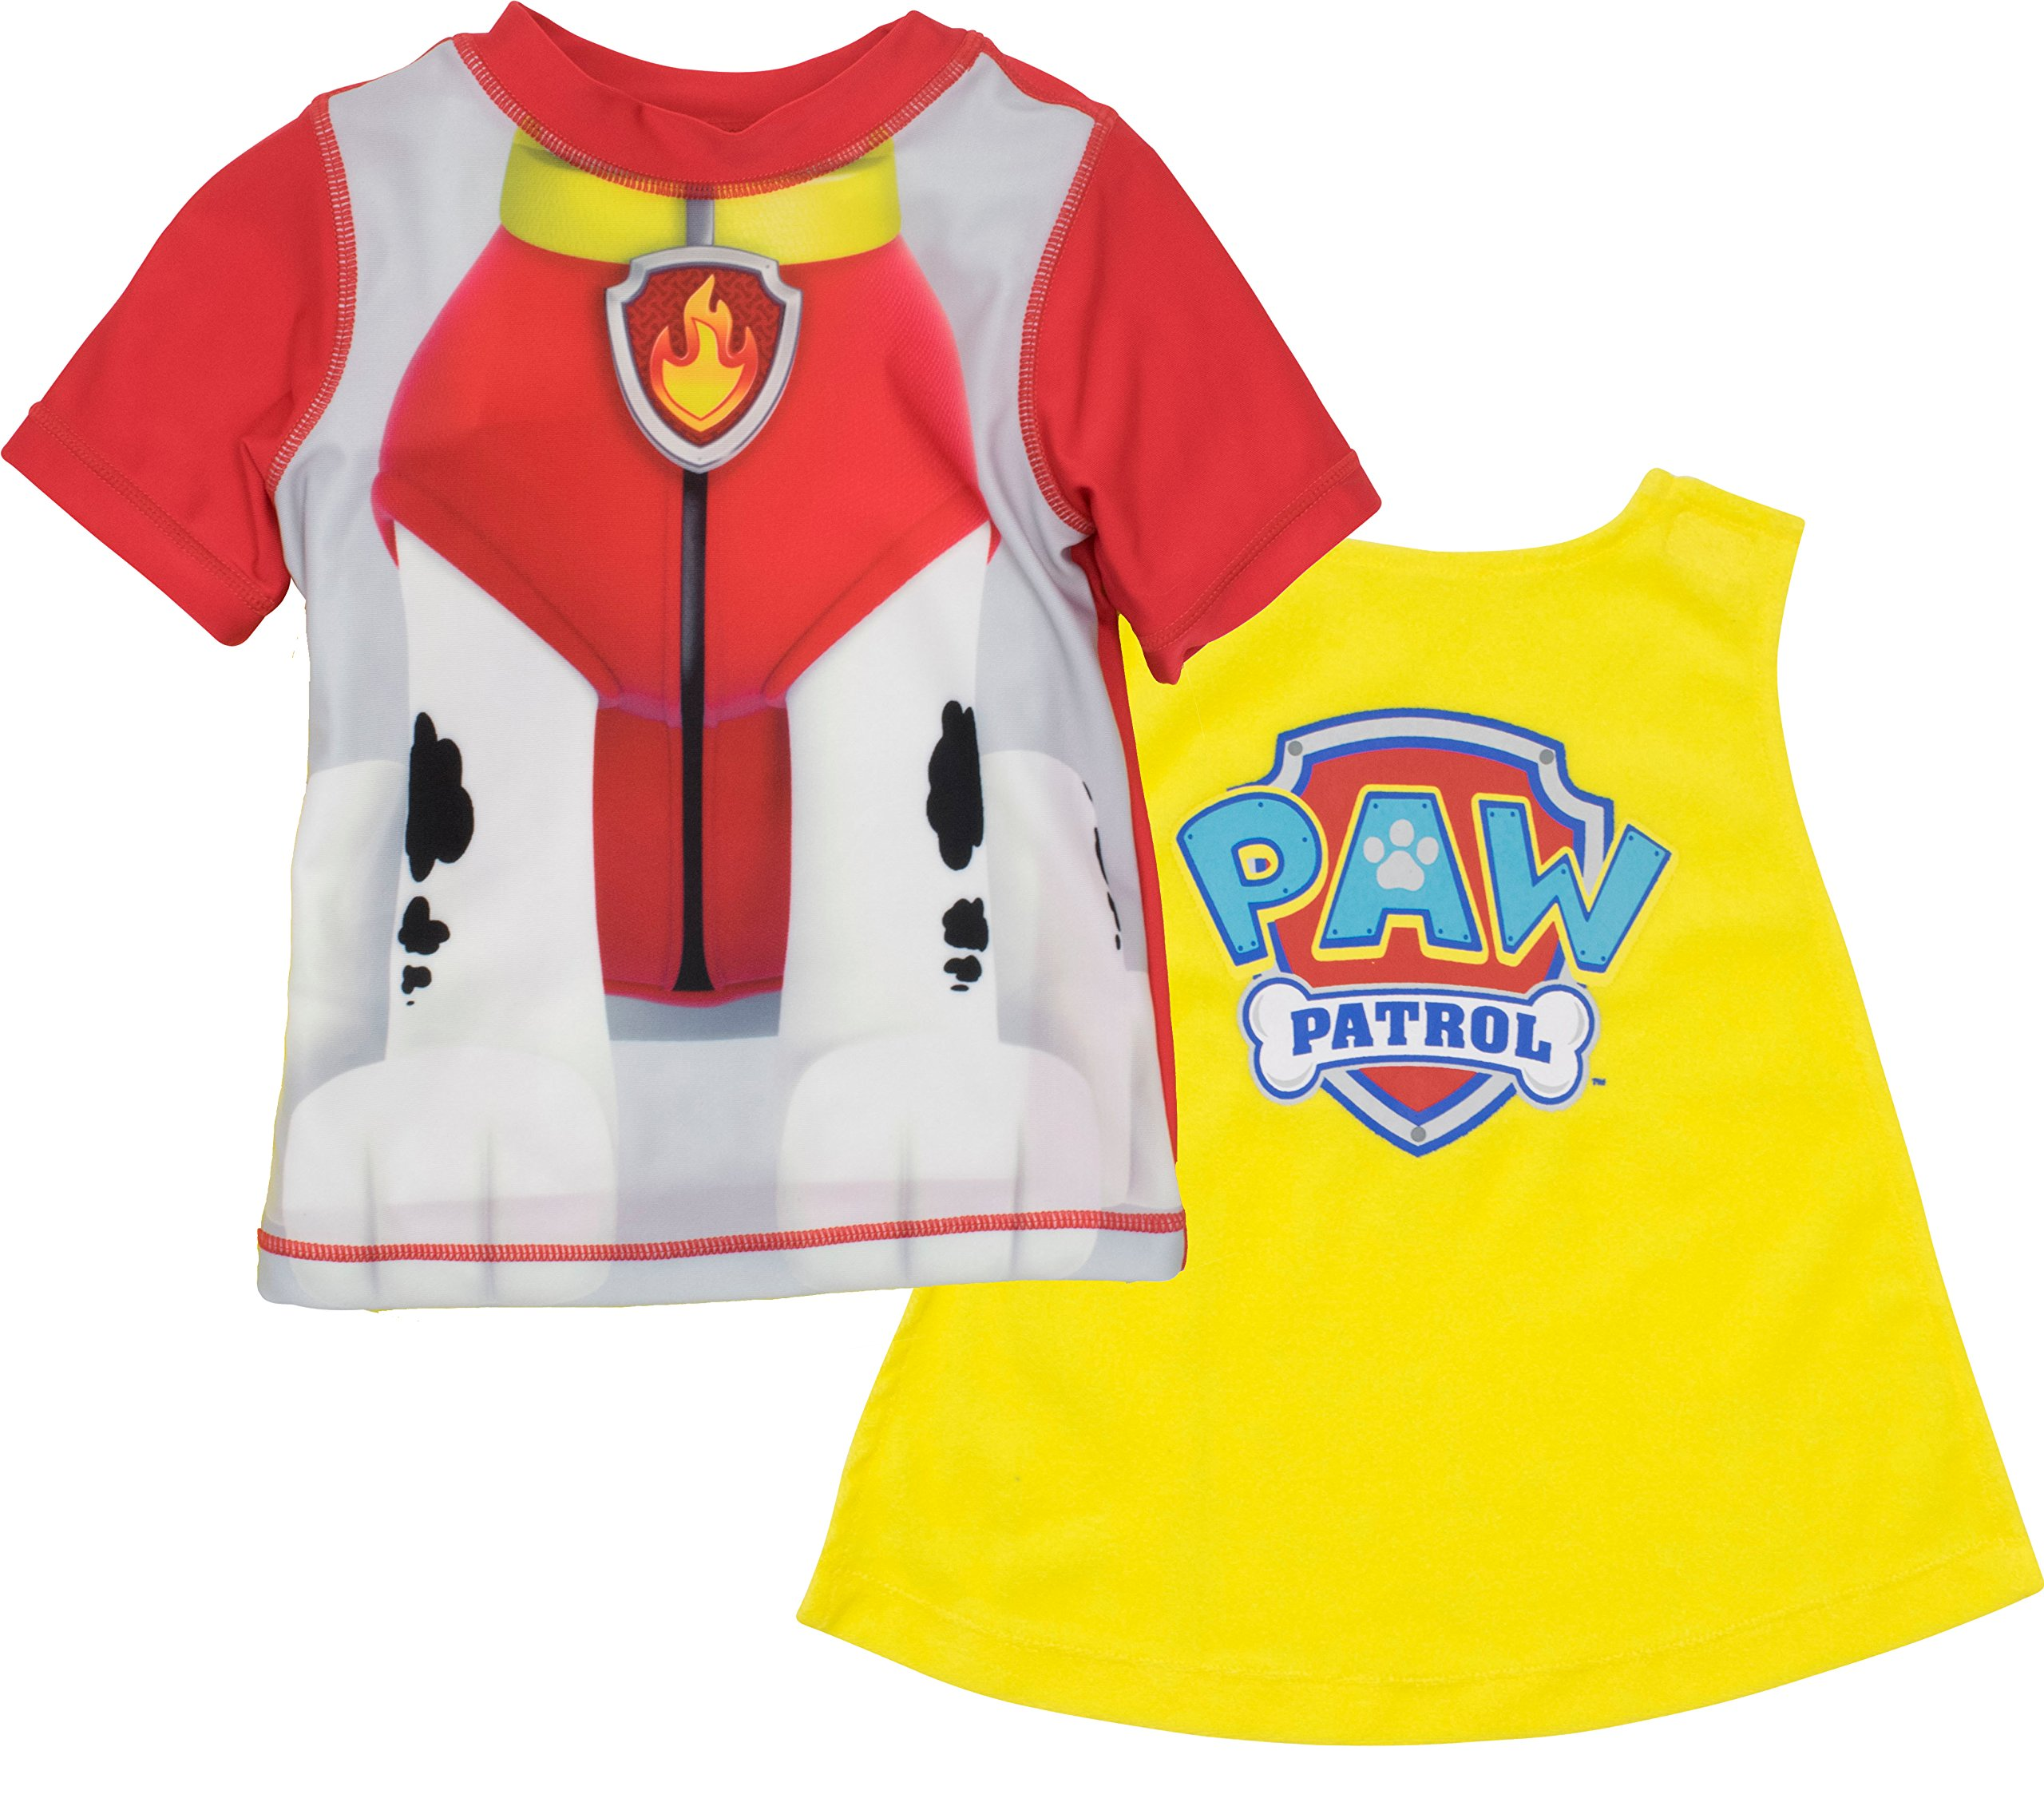 c7efee1705 Nickelodeon Paw Patrol Boys' Rash Guard Swim Shirt & Caped Towel Set -  Marshall,